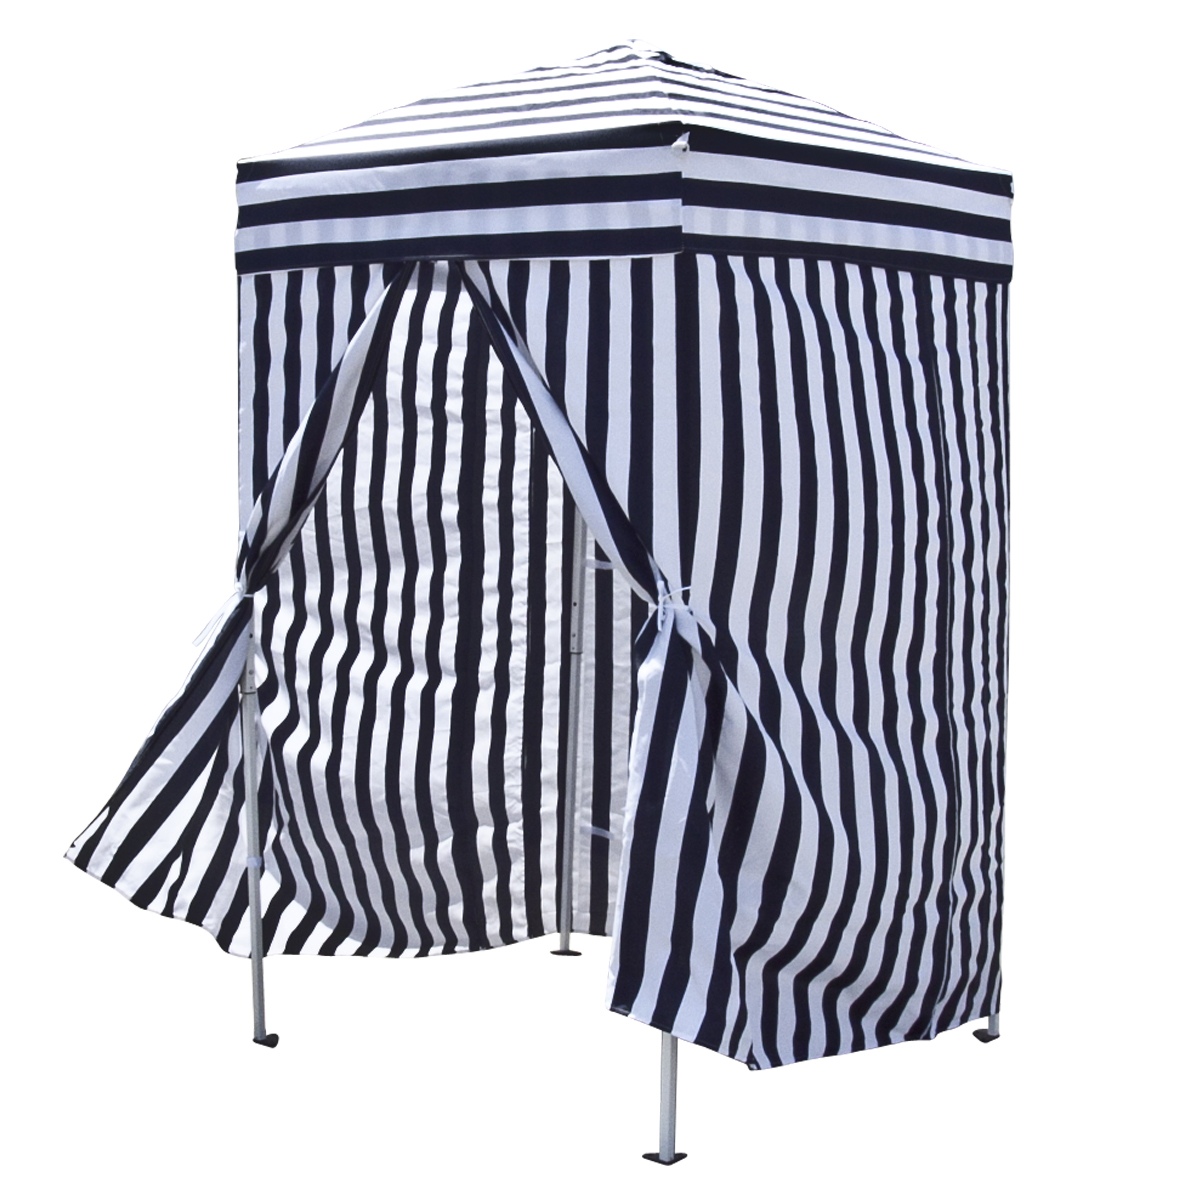 Changing Cabana Portable Stripe Room Privacy Tent Pool